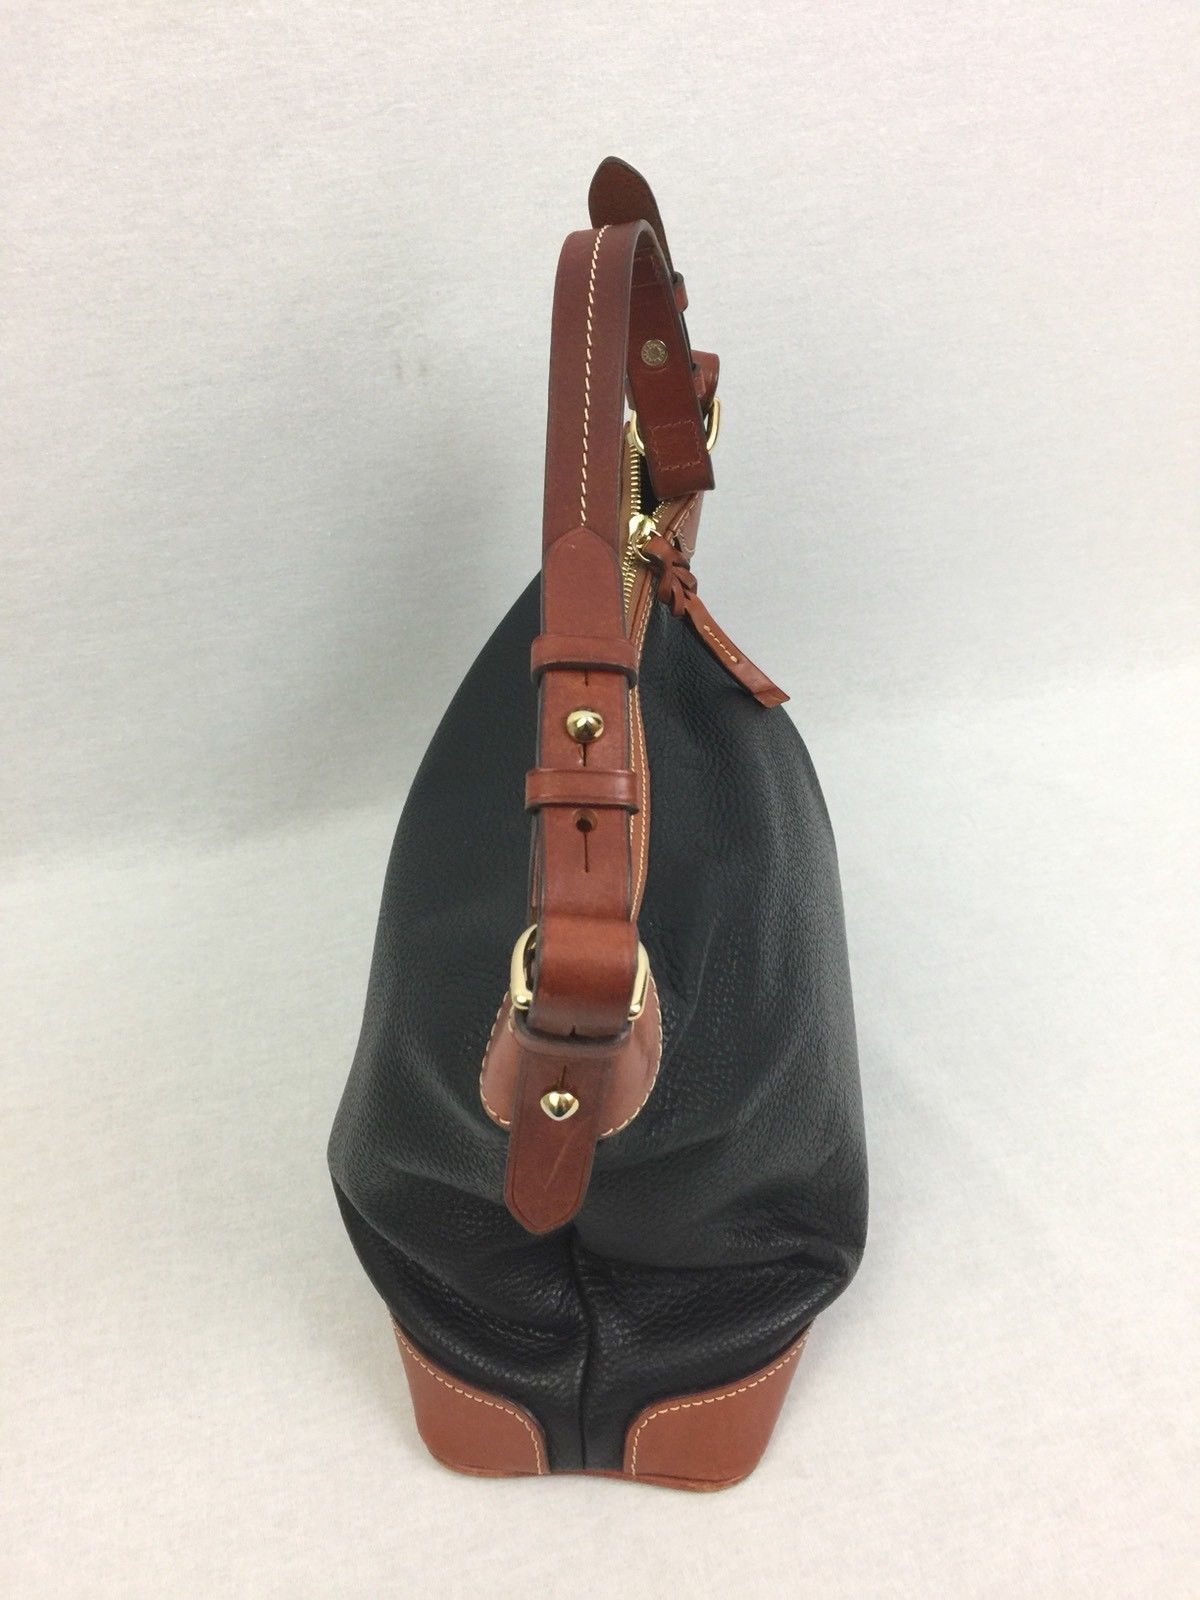 Dooney and Bourke Black Pebble Leather Hobo Style Womenus Purse